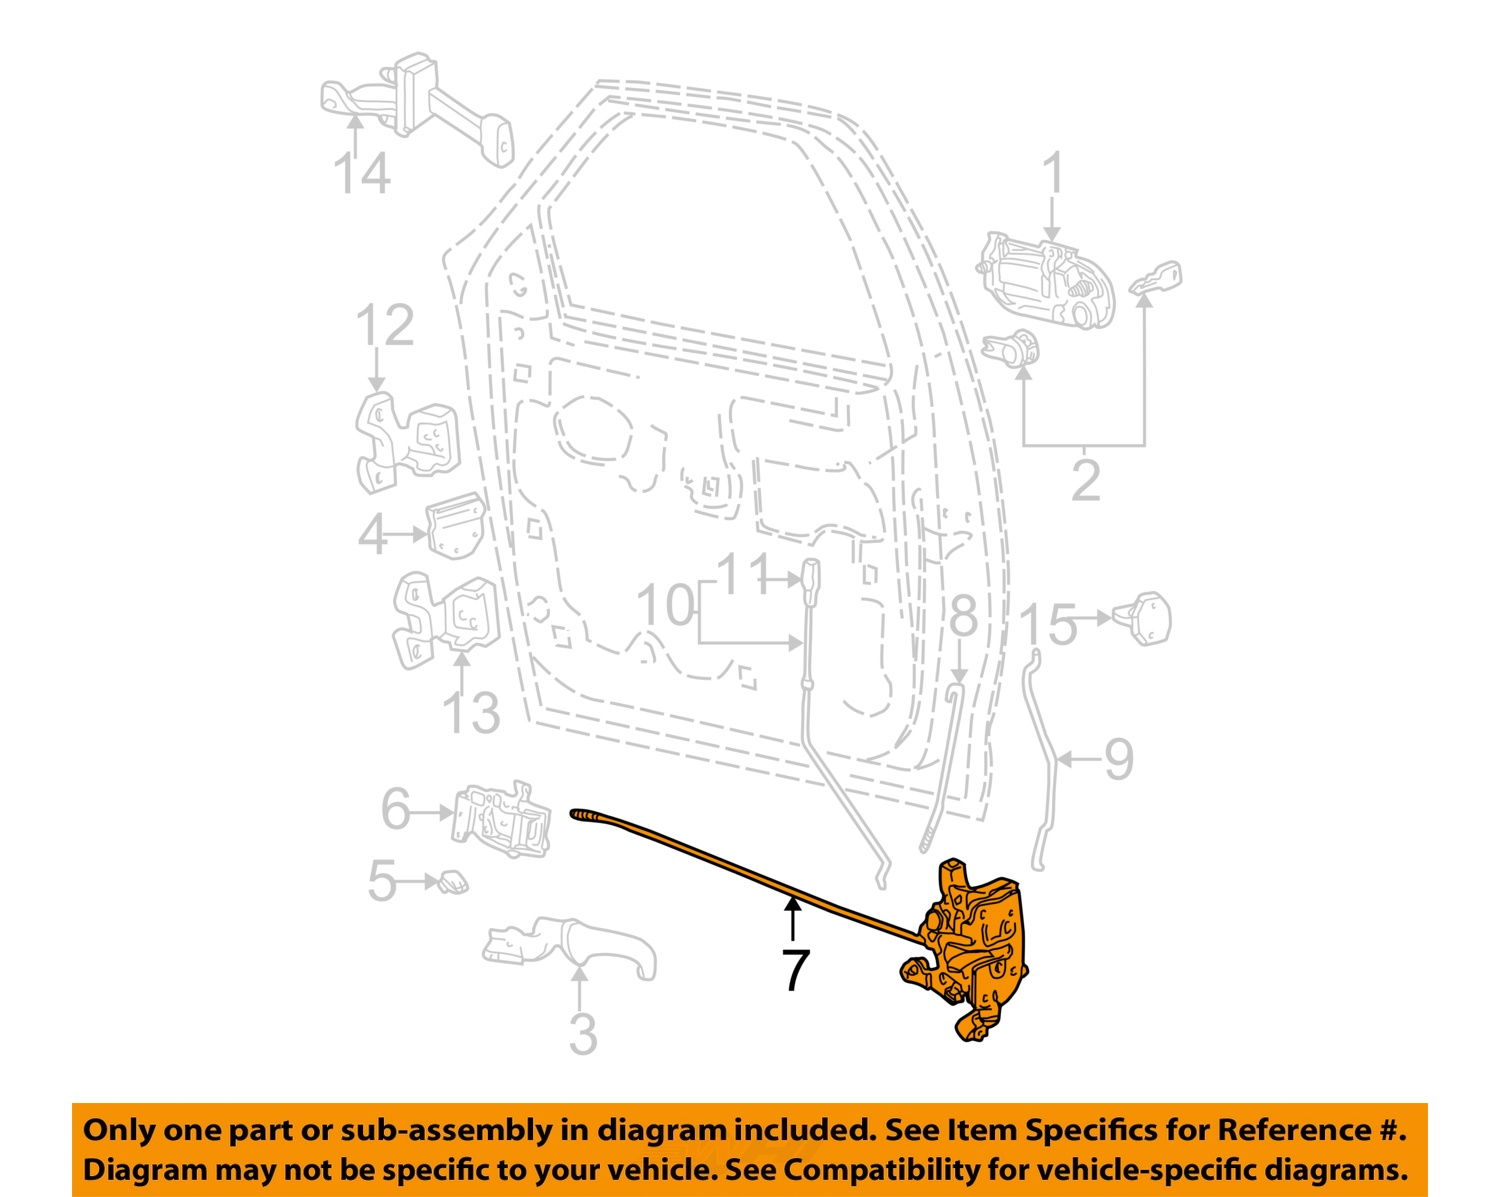 hight resolution of 2003 ram spark plug wire diagram trusted wiring diagrams 2000 ford taurus spark plug wire diagram